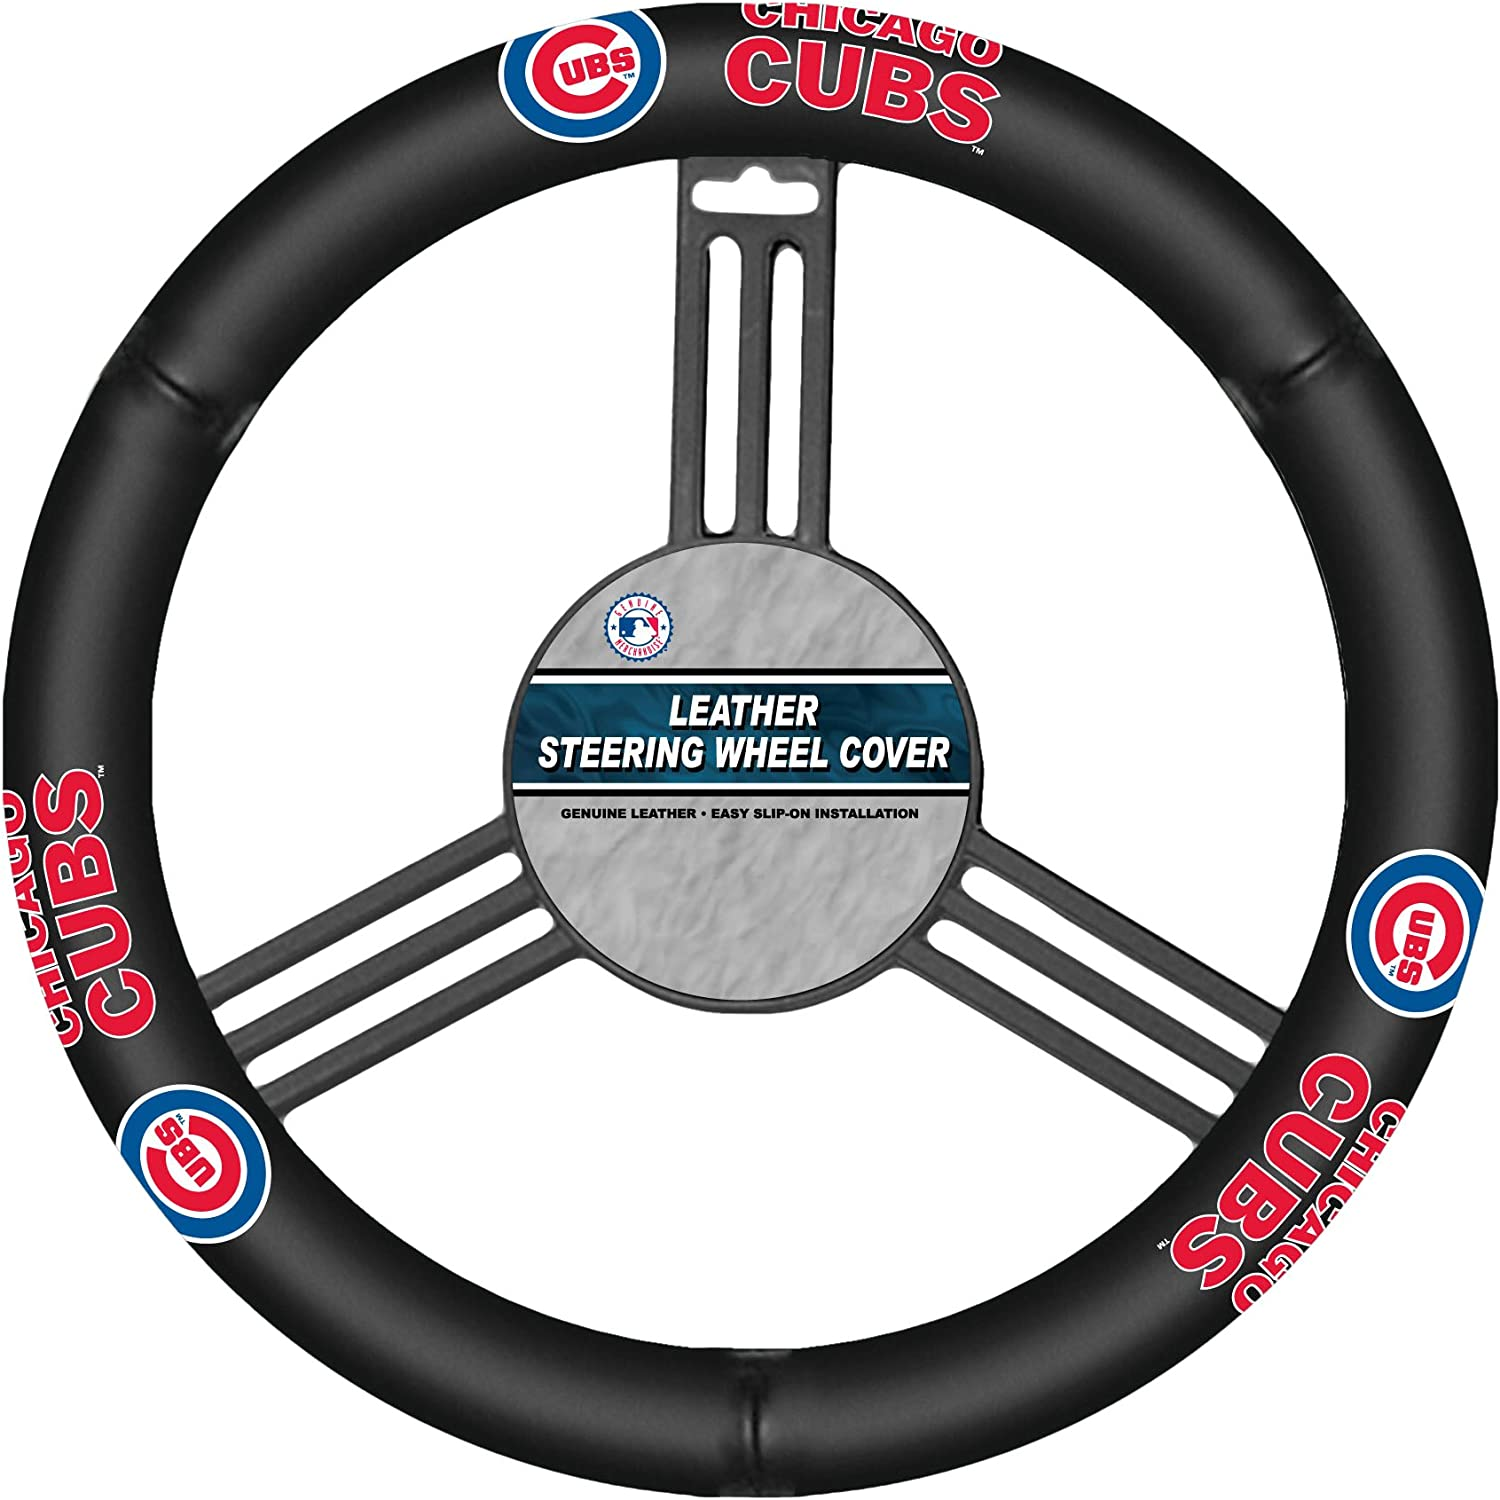 Fremont Die MLB Leather Steering Wheel Cover